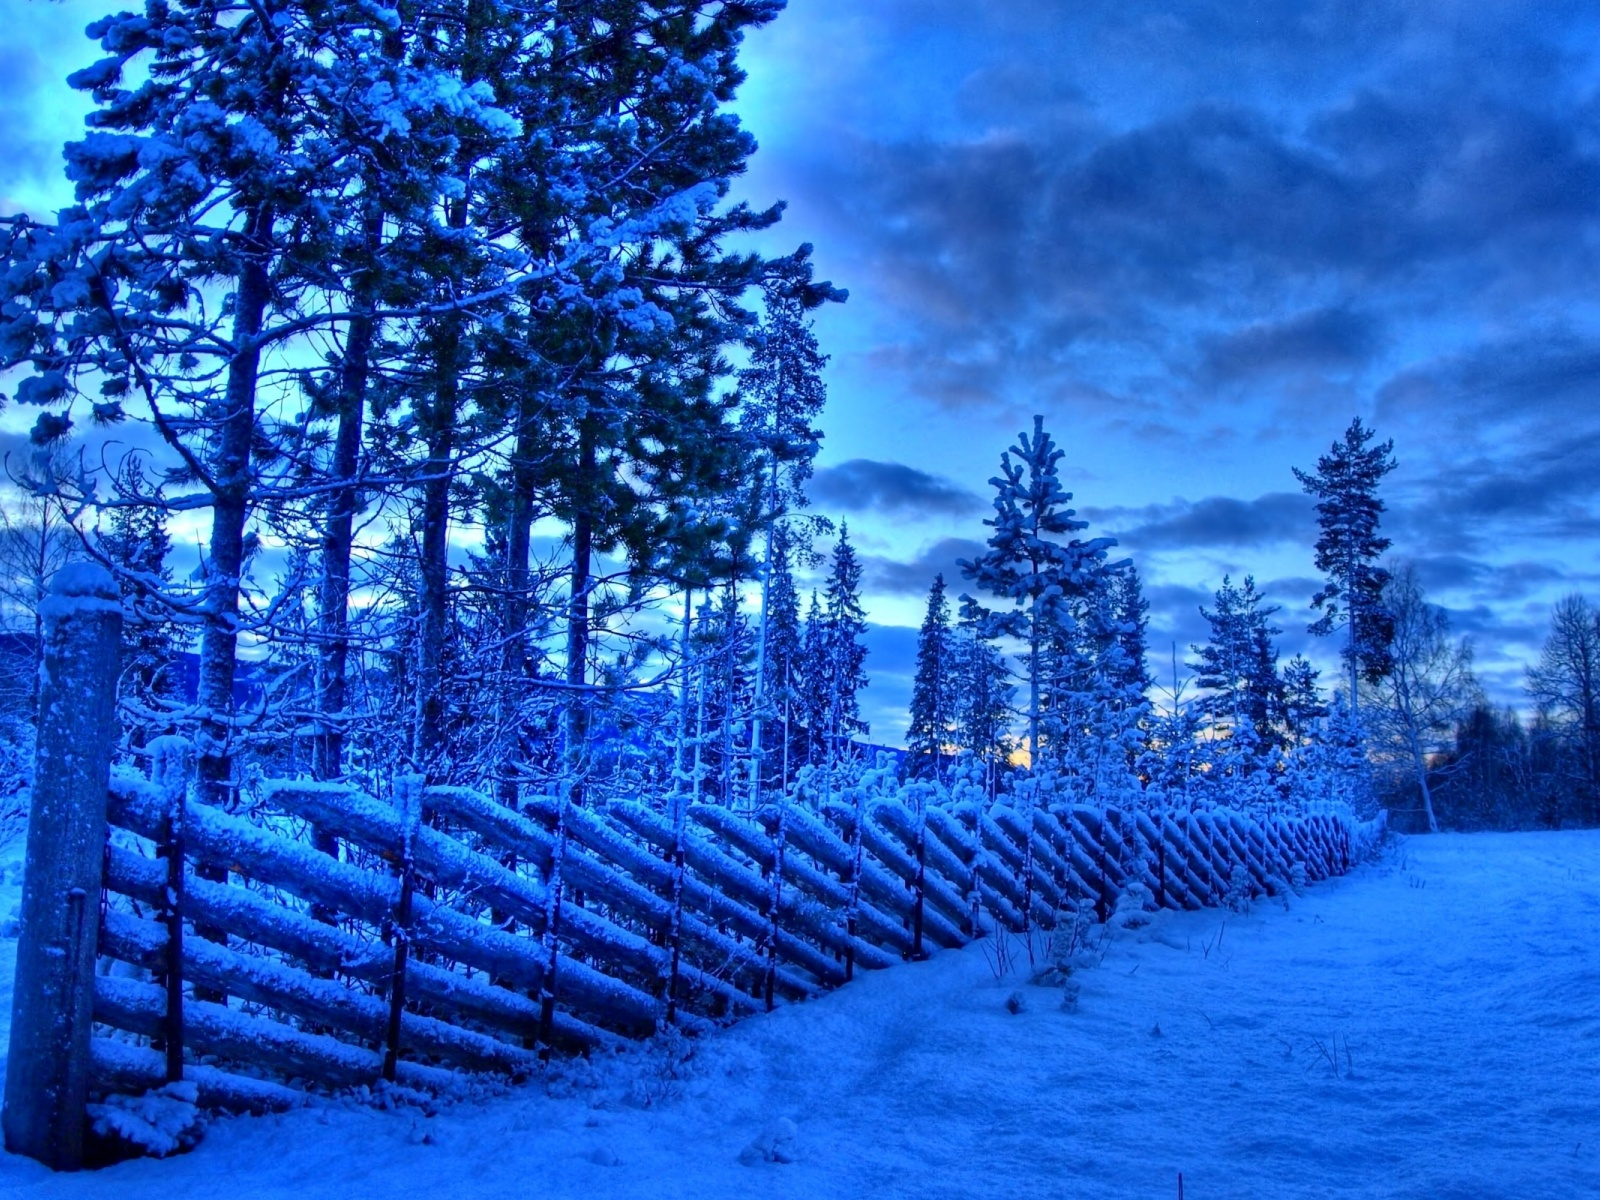 1500x500 Frozen fence, snow, winter, tree, sky, cloud, nature